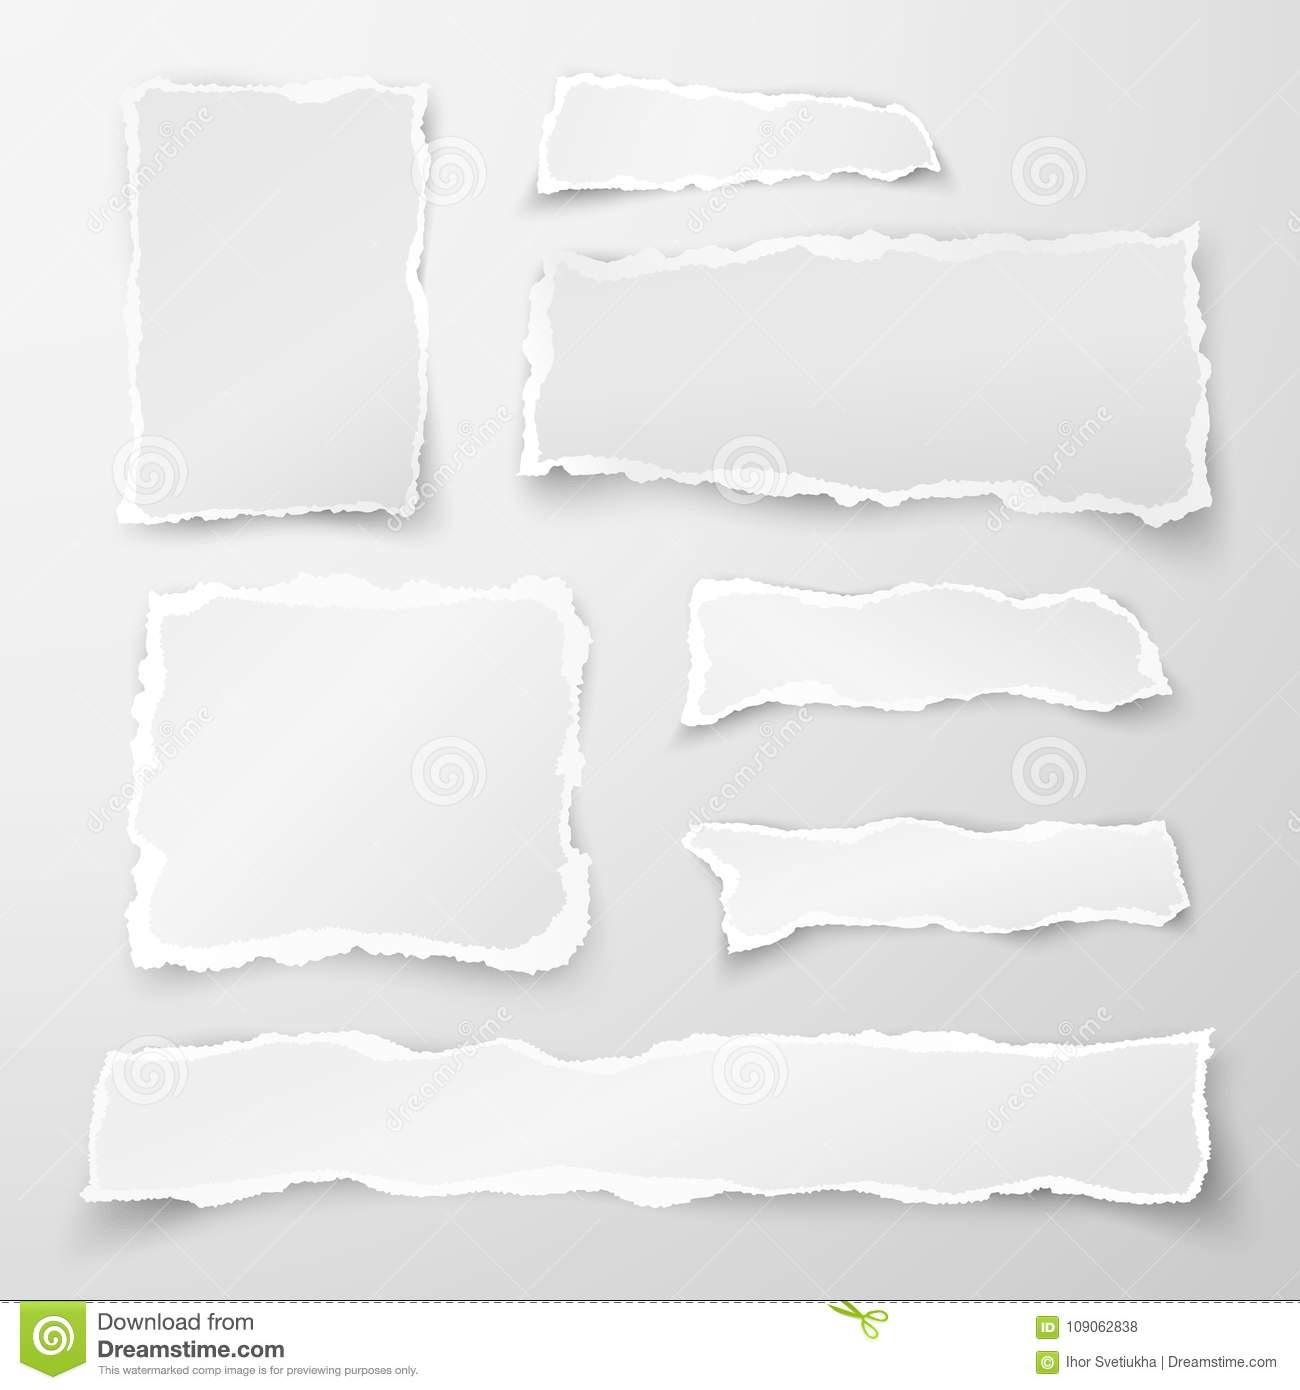 Set of torn paper pieces. Scrap paper. Object strip with shadow isolated on gray background. Vector